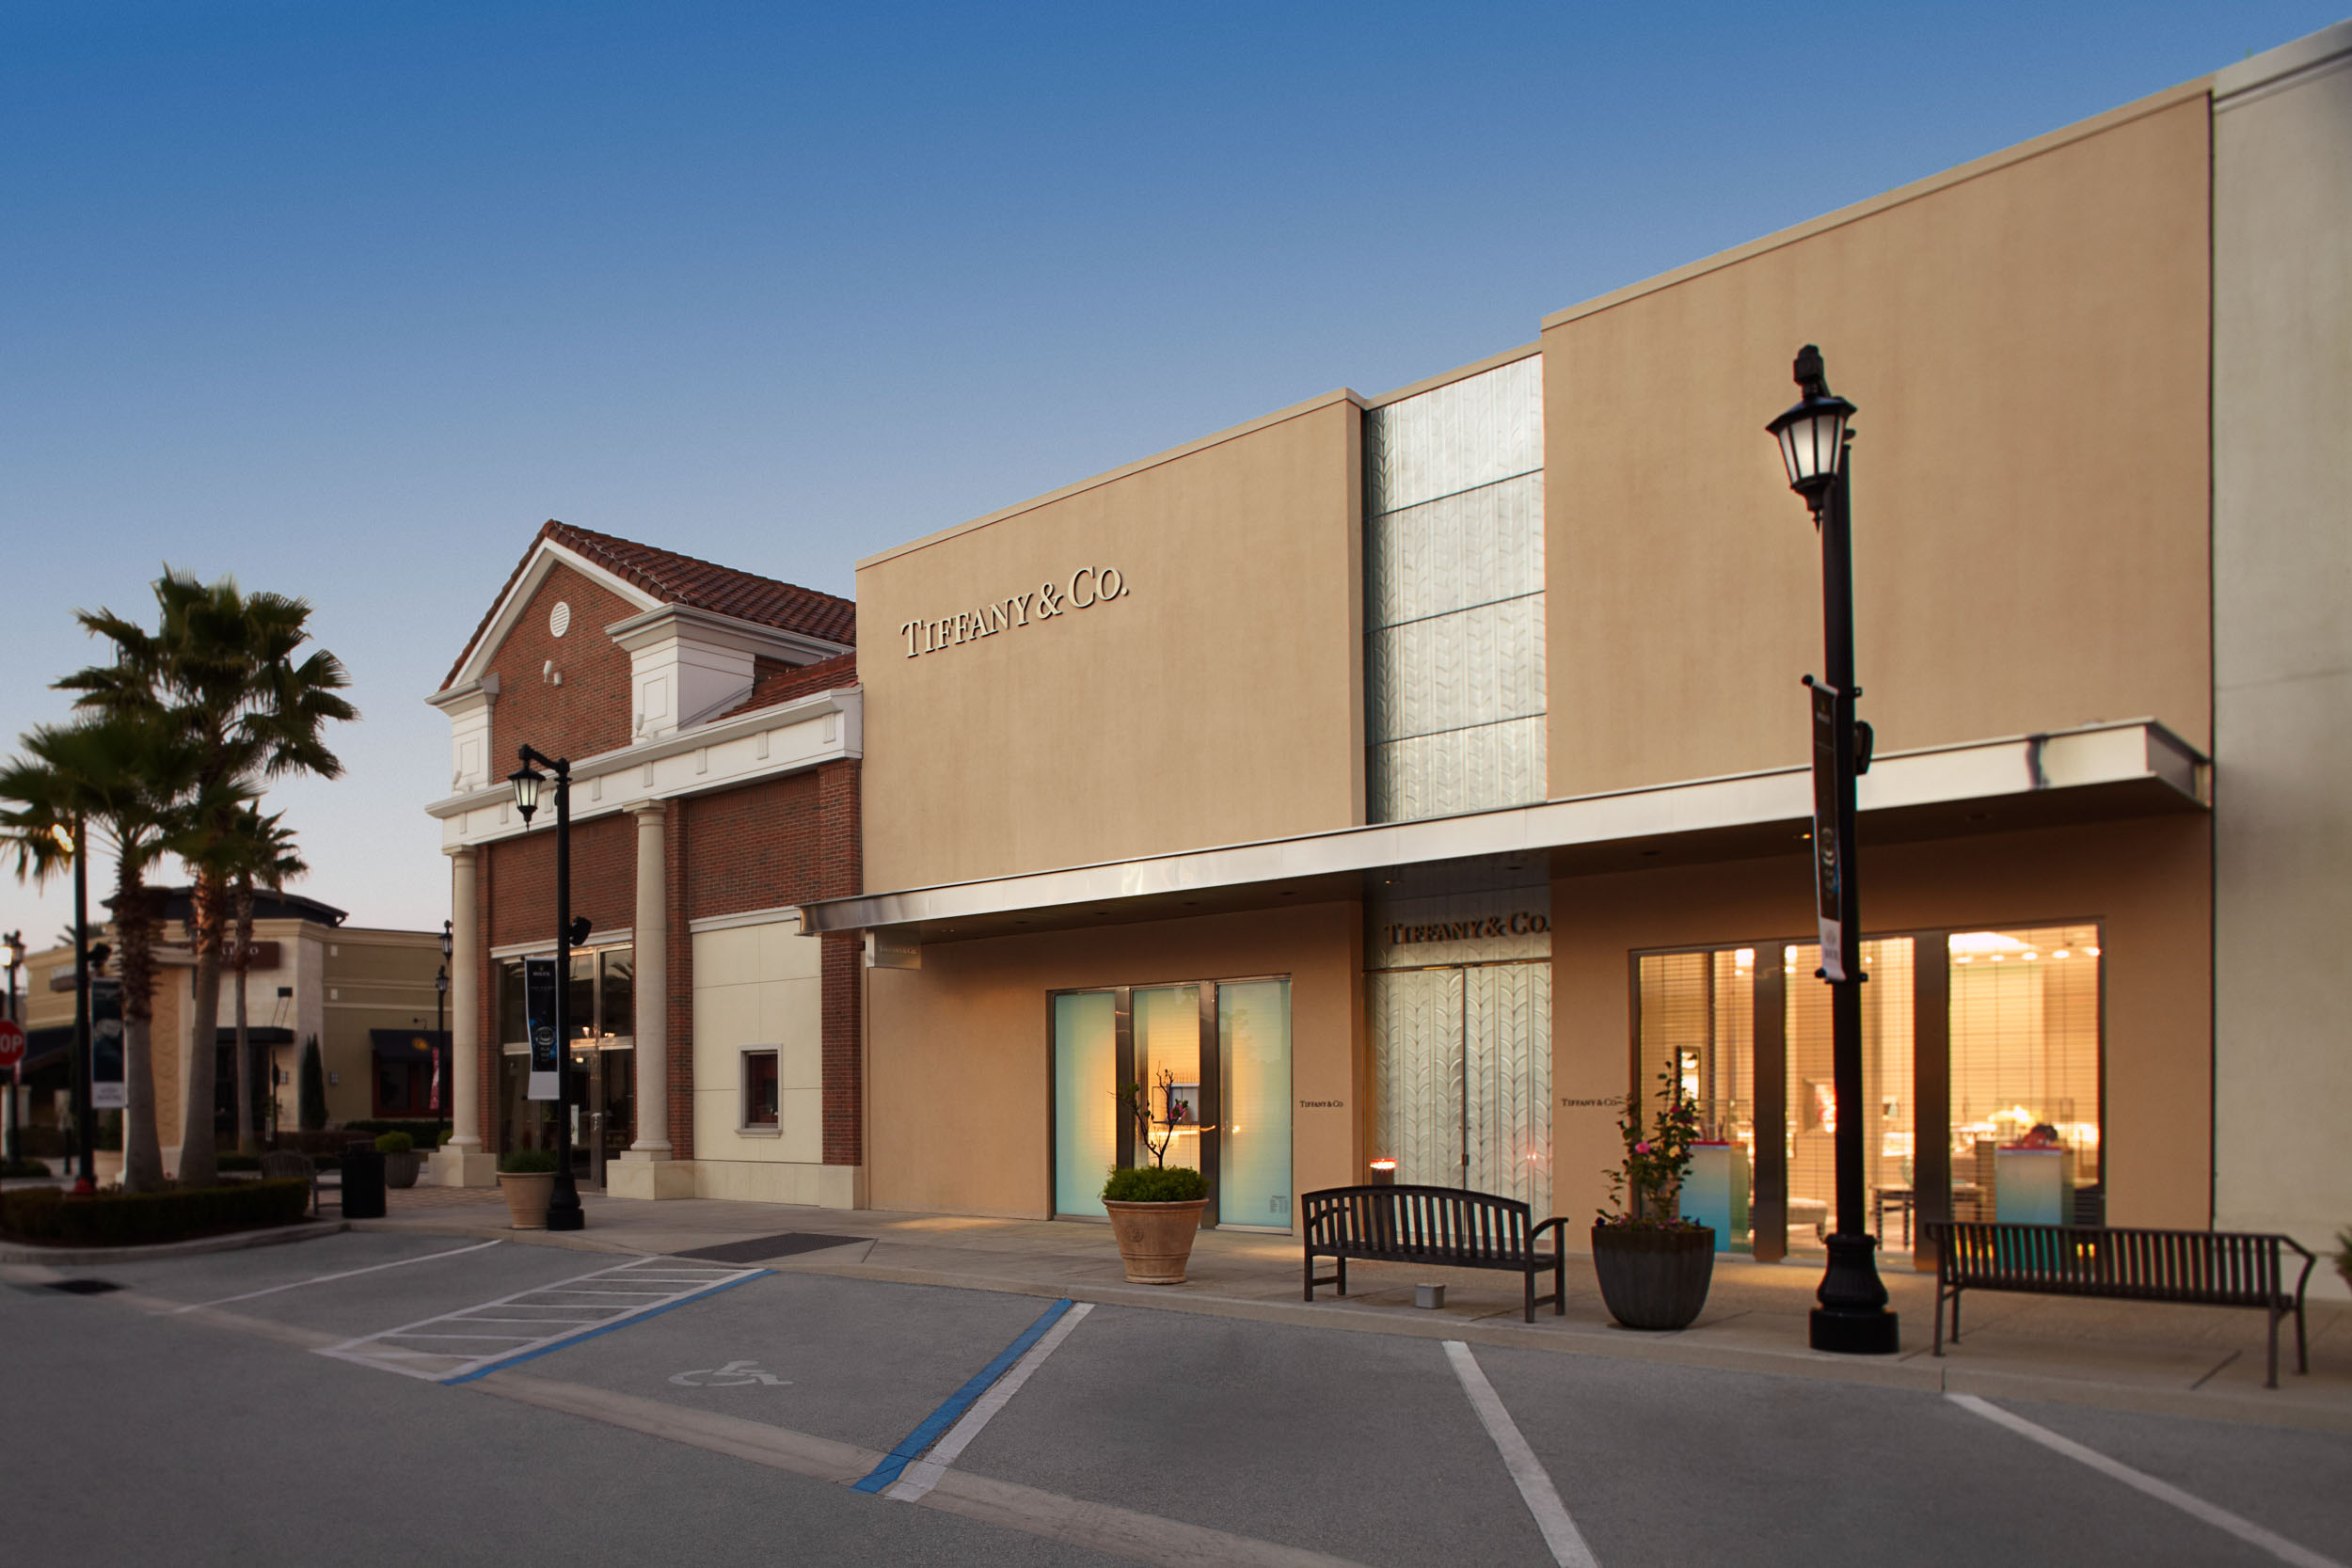 Retail exteriors by Steven Martine, Florida architecture photographer